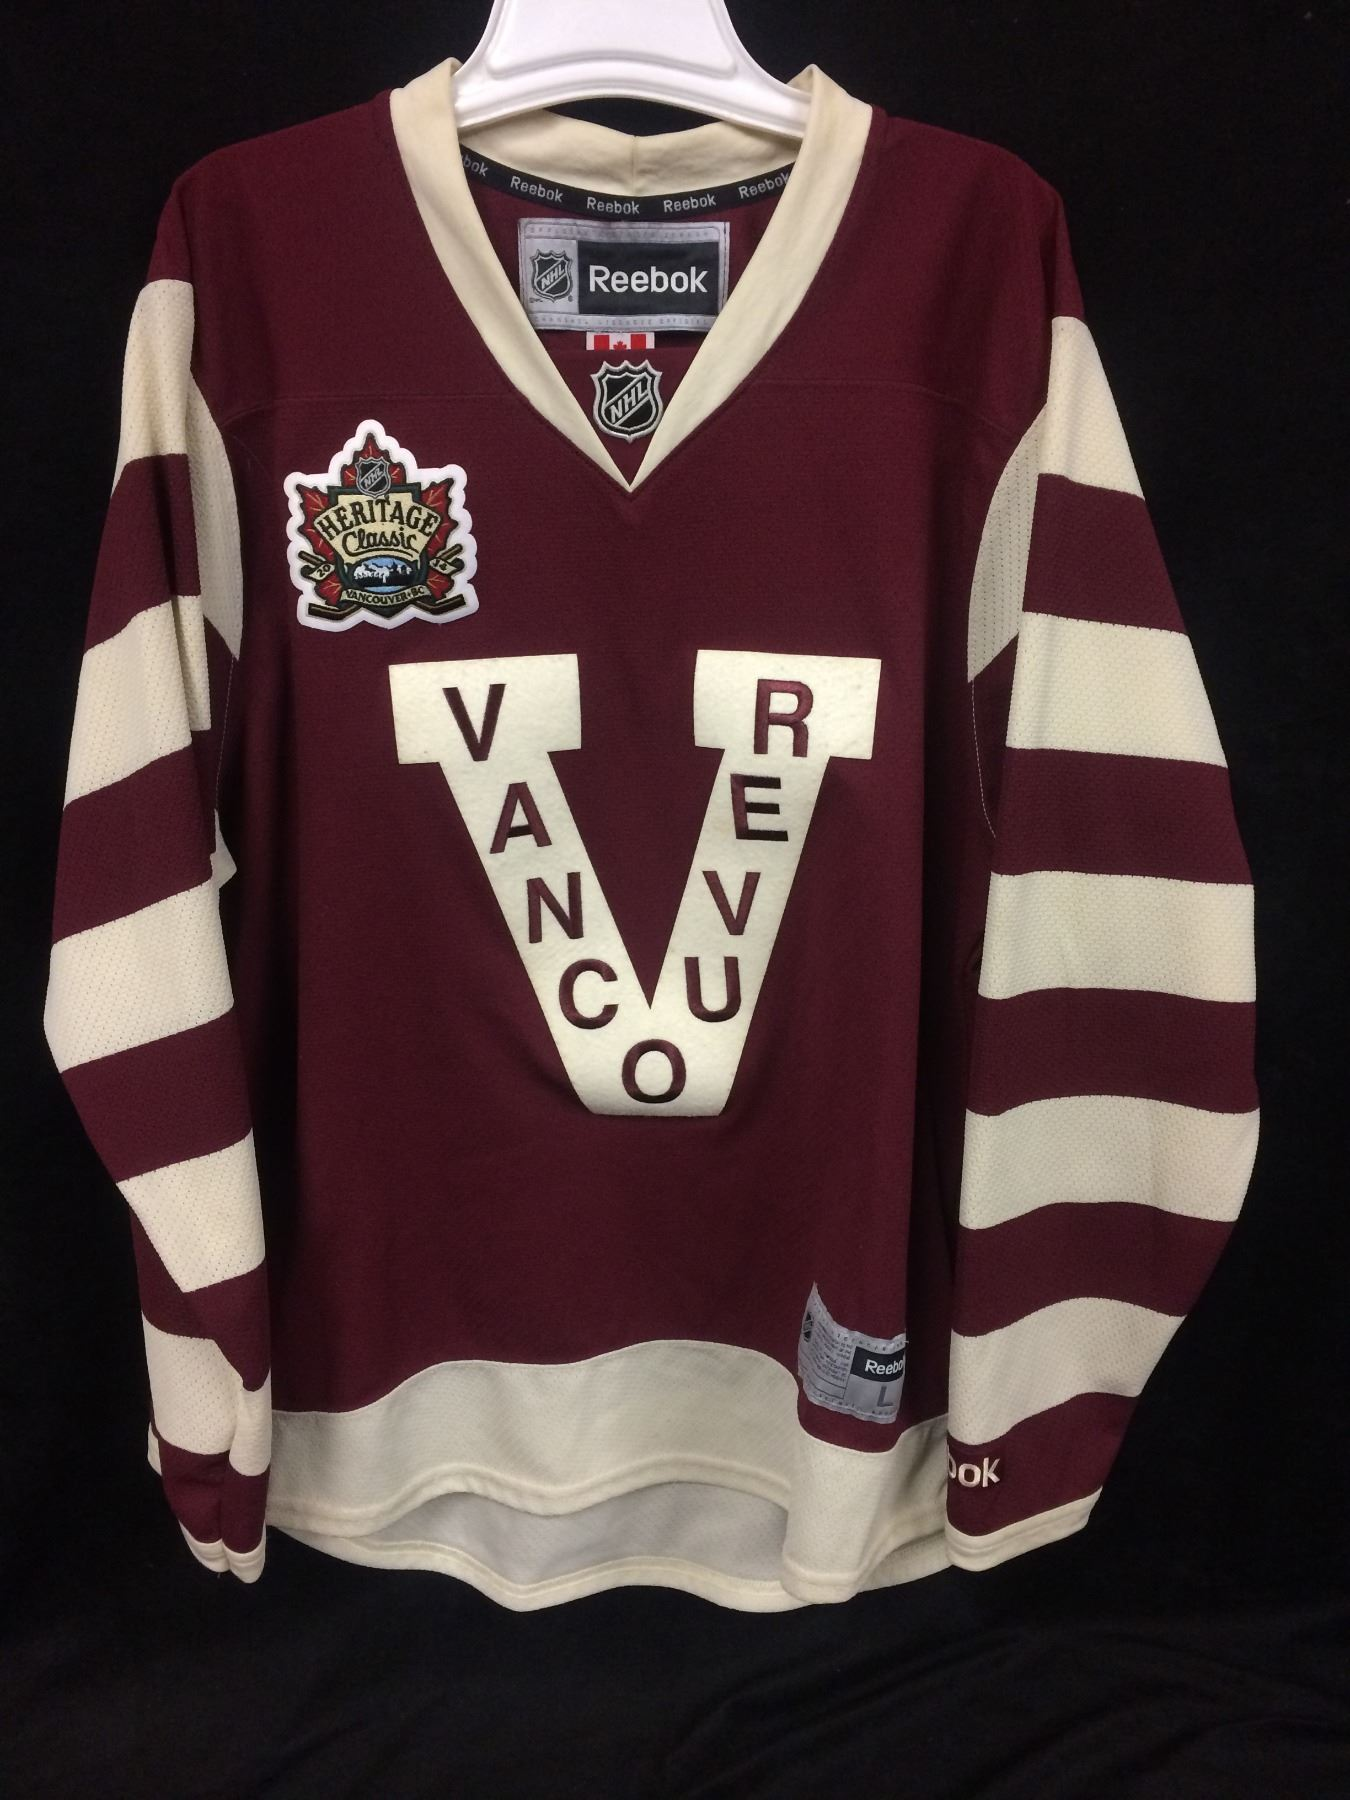 on sale 201a8 7a757 HERITAGE CLASSIC VANCOUVER CANUCKS HOCKEY JERSEY (SIZE LARGE)